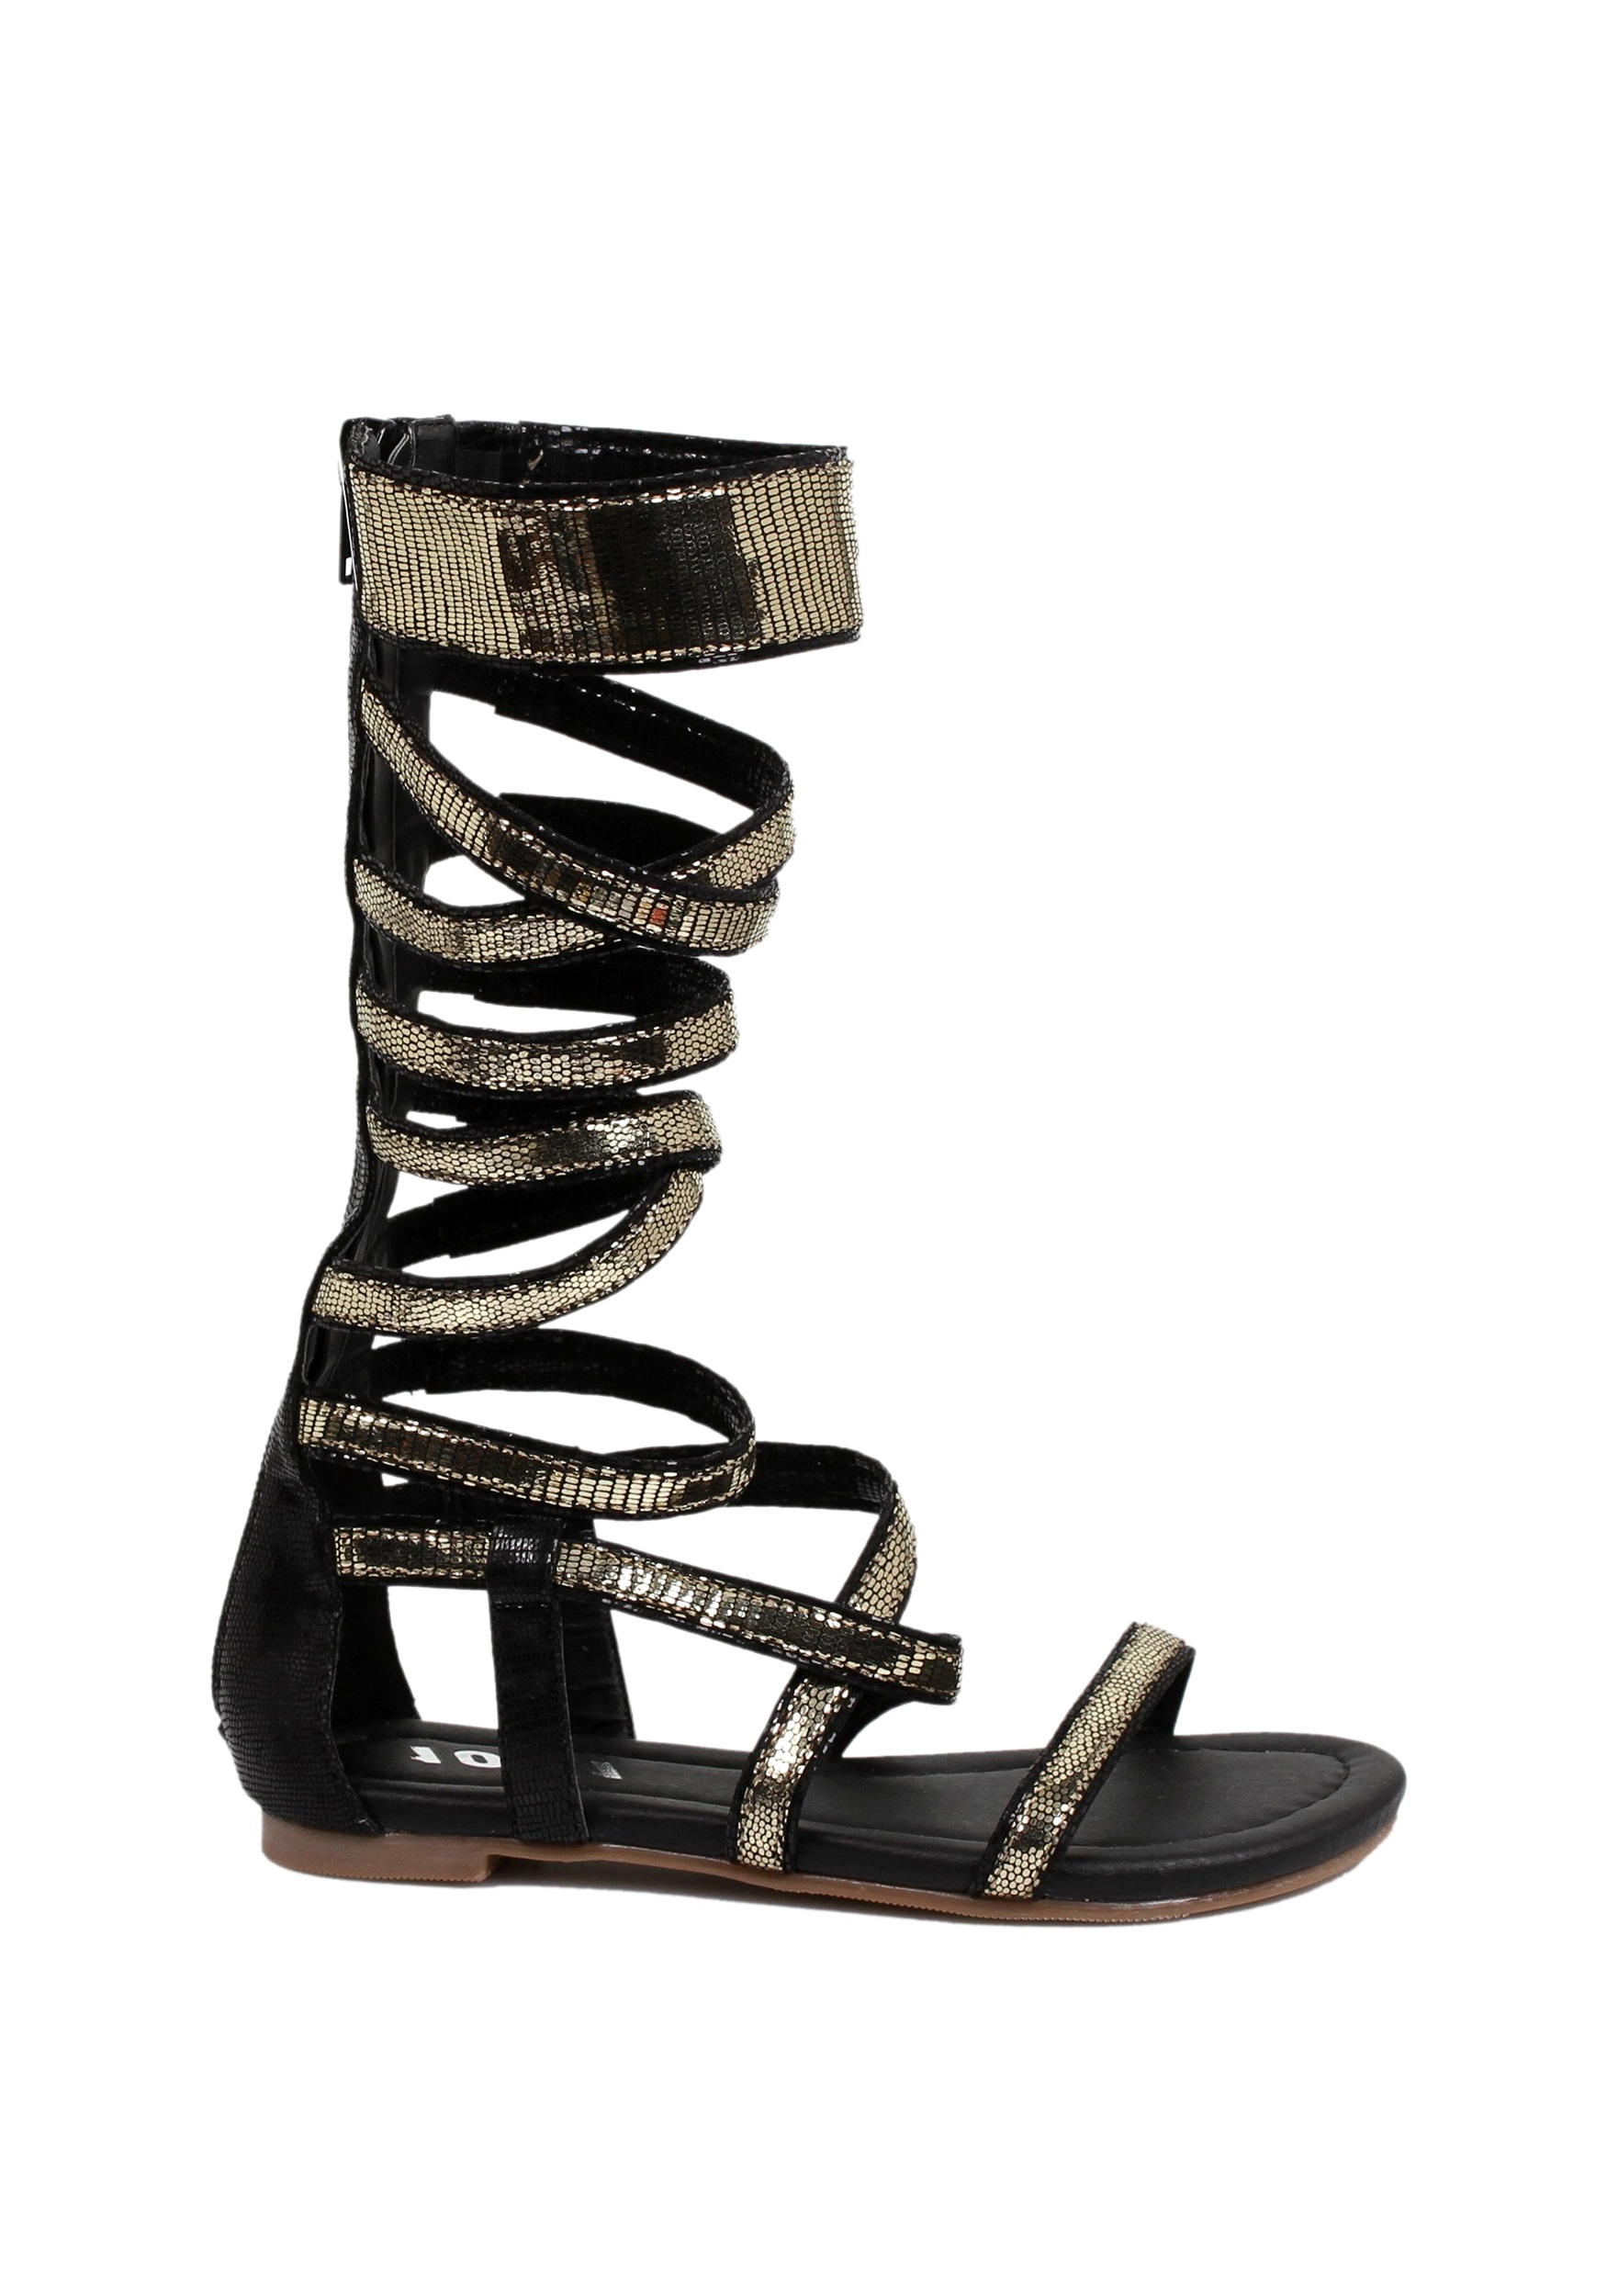 Warrior Sandals for Women